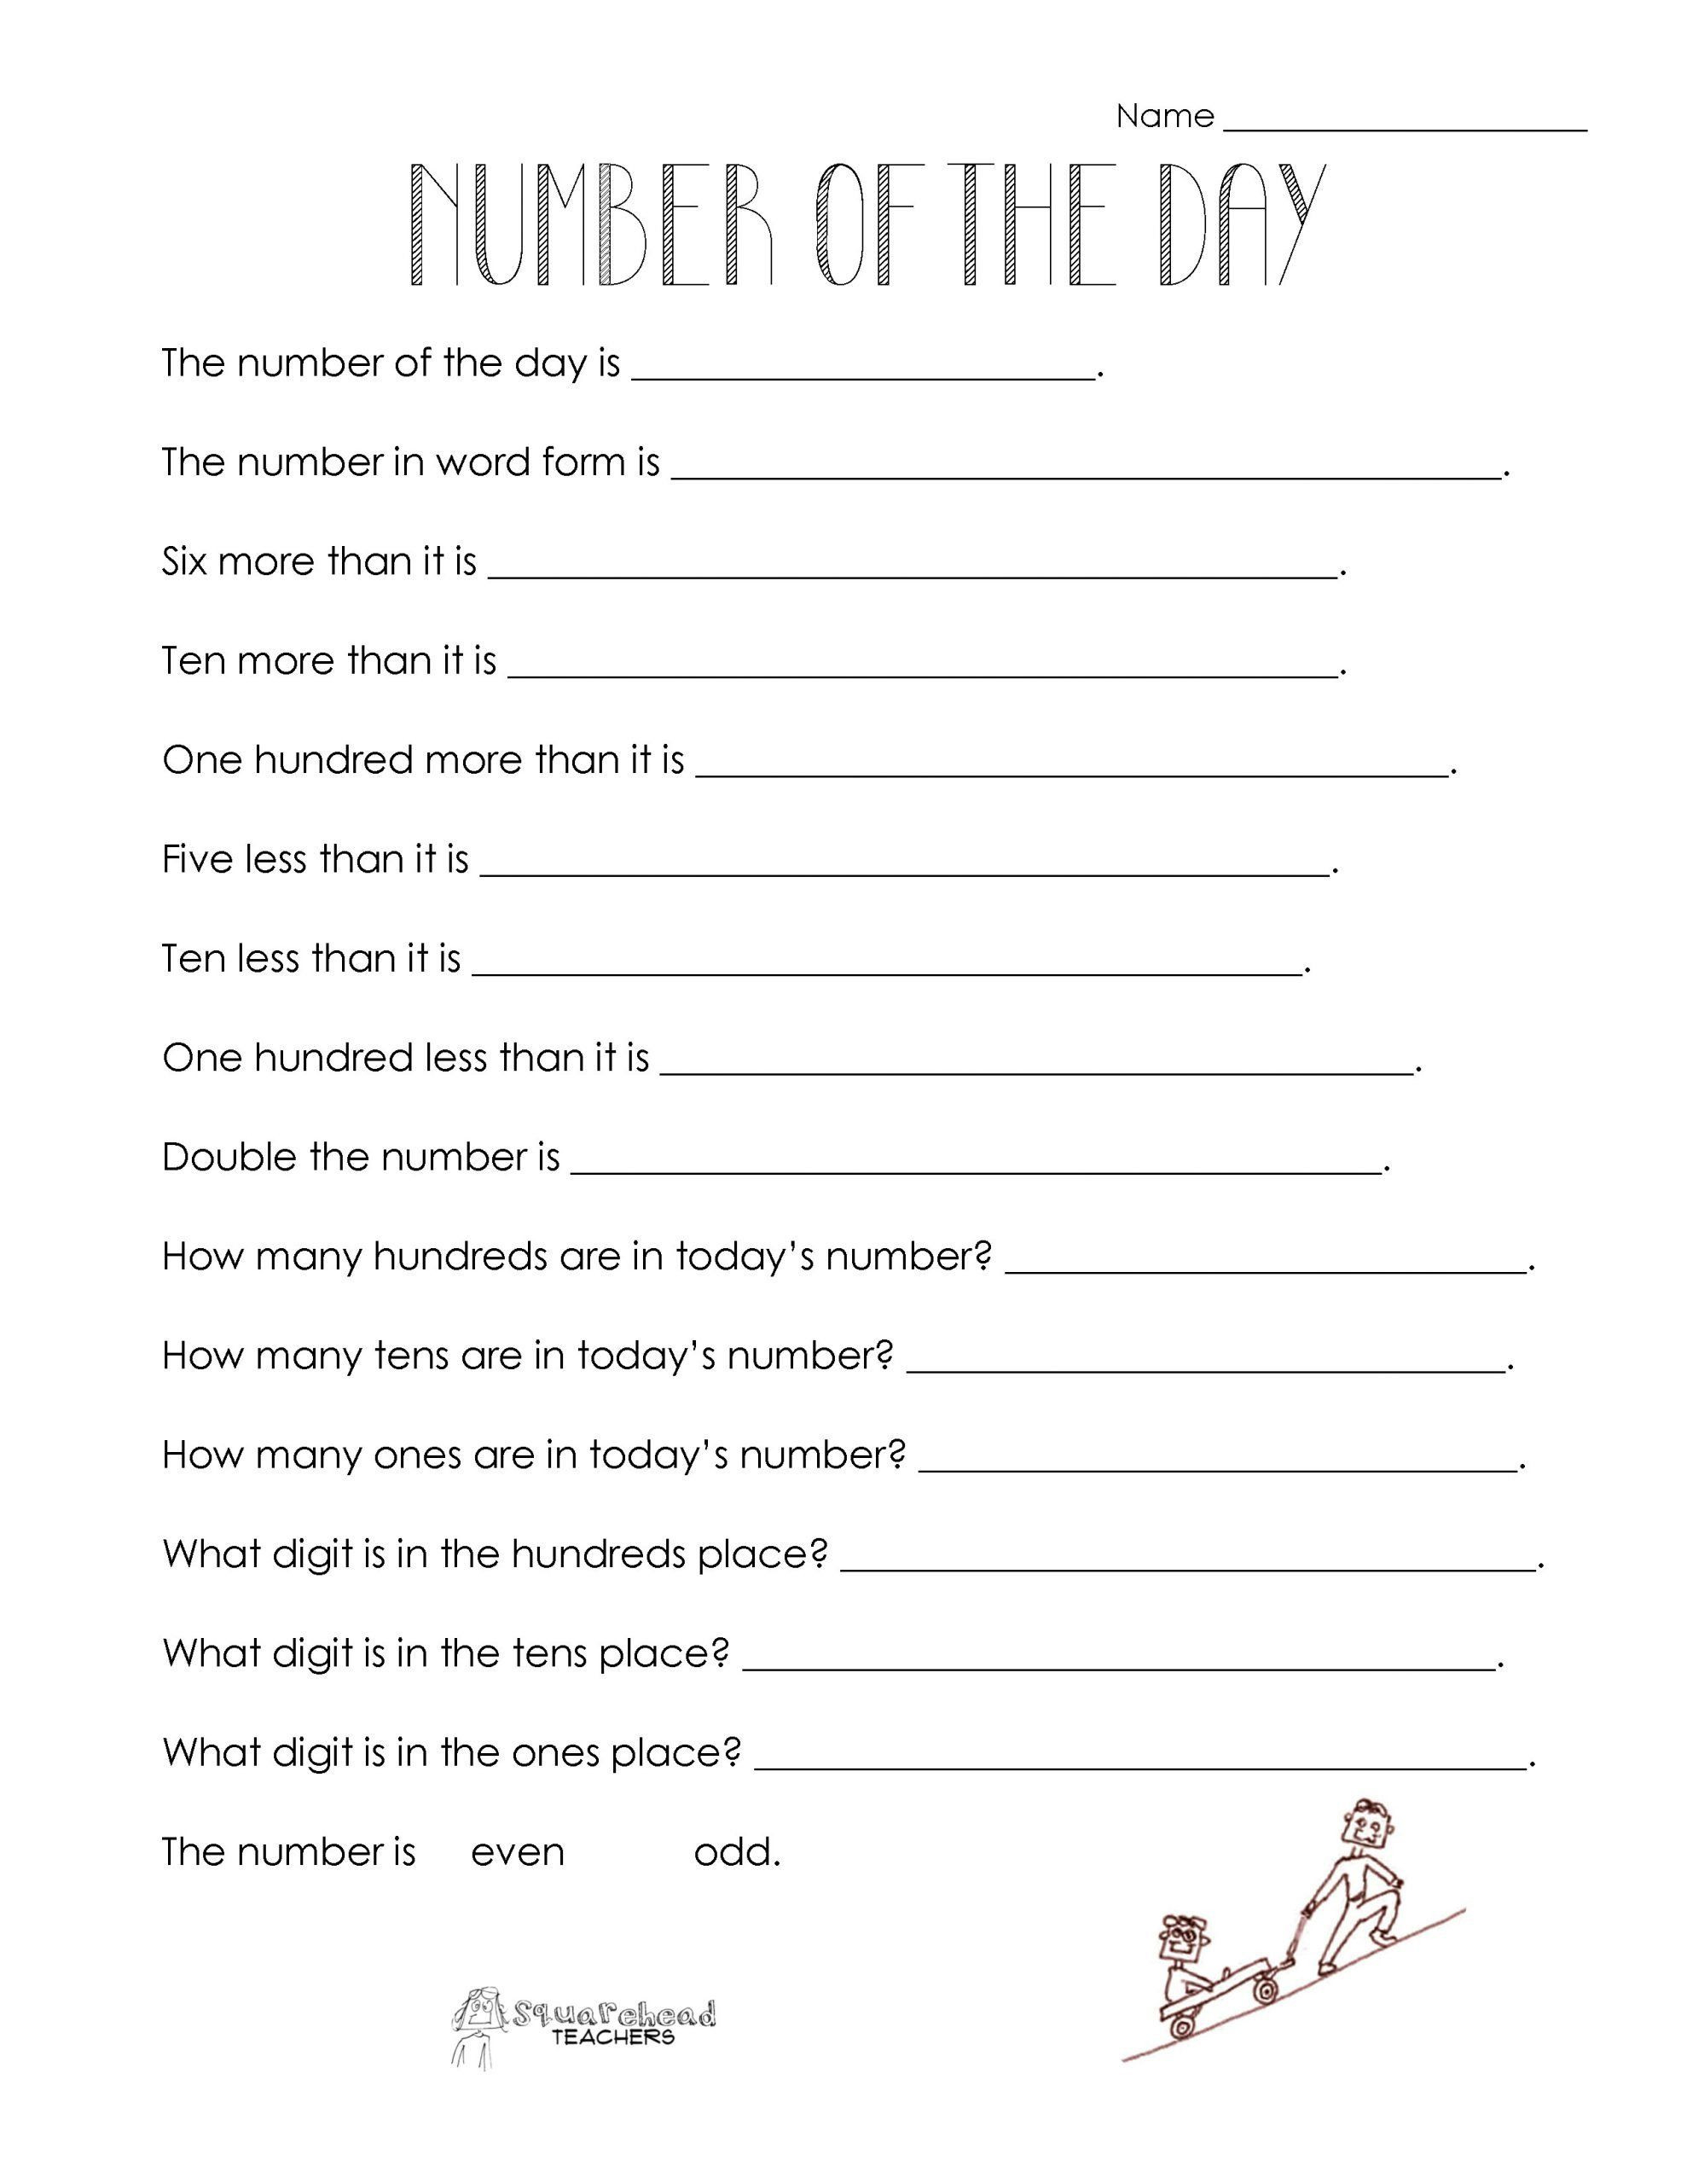 Sequence Worksheets for 3rd Grade Pin On 1st Grade Worksheets & Free Printables